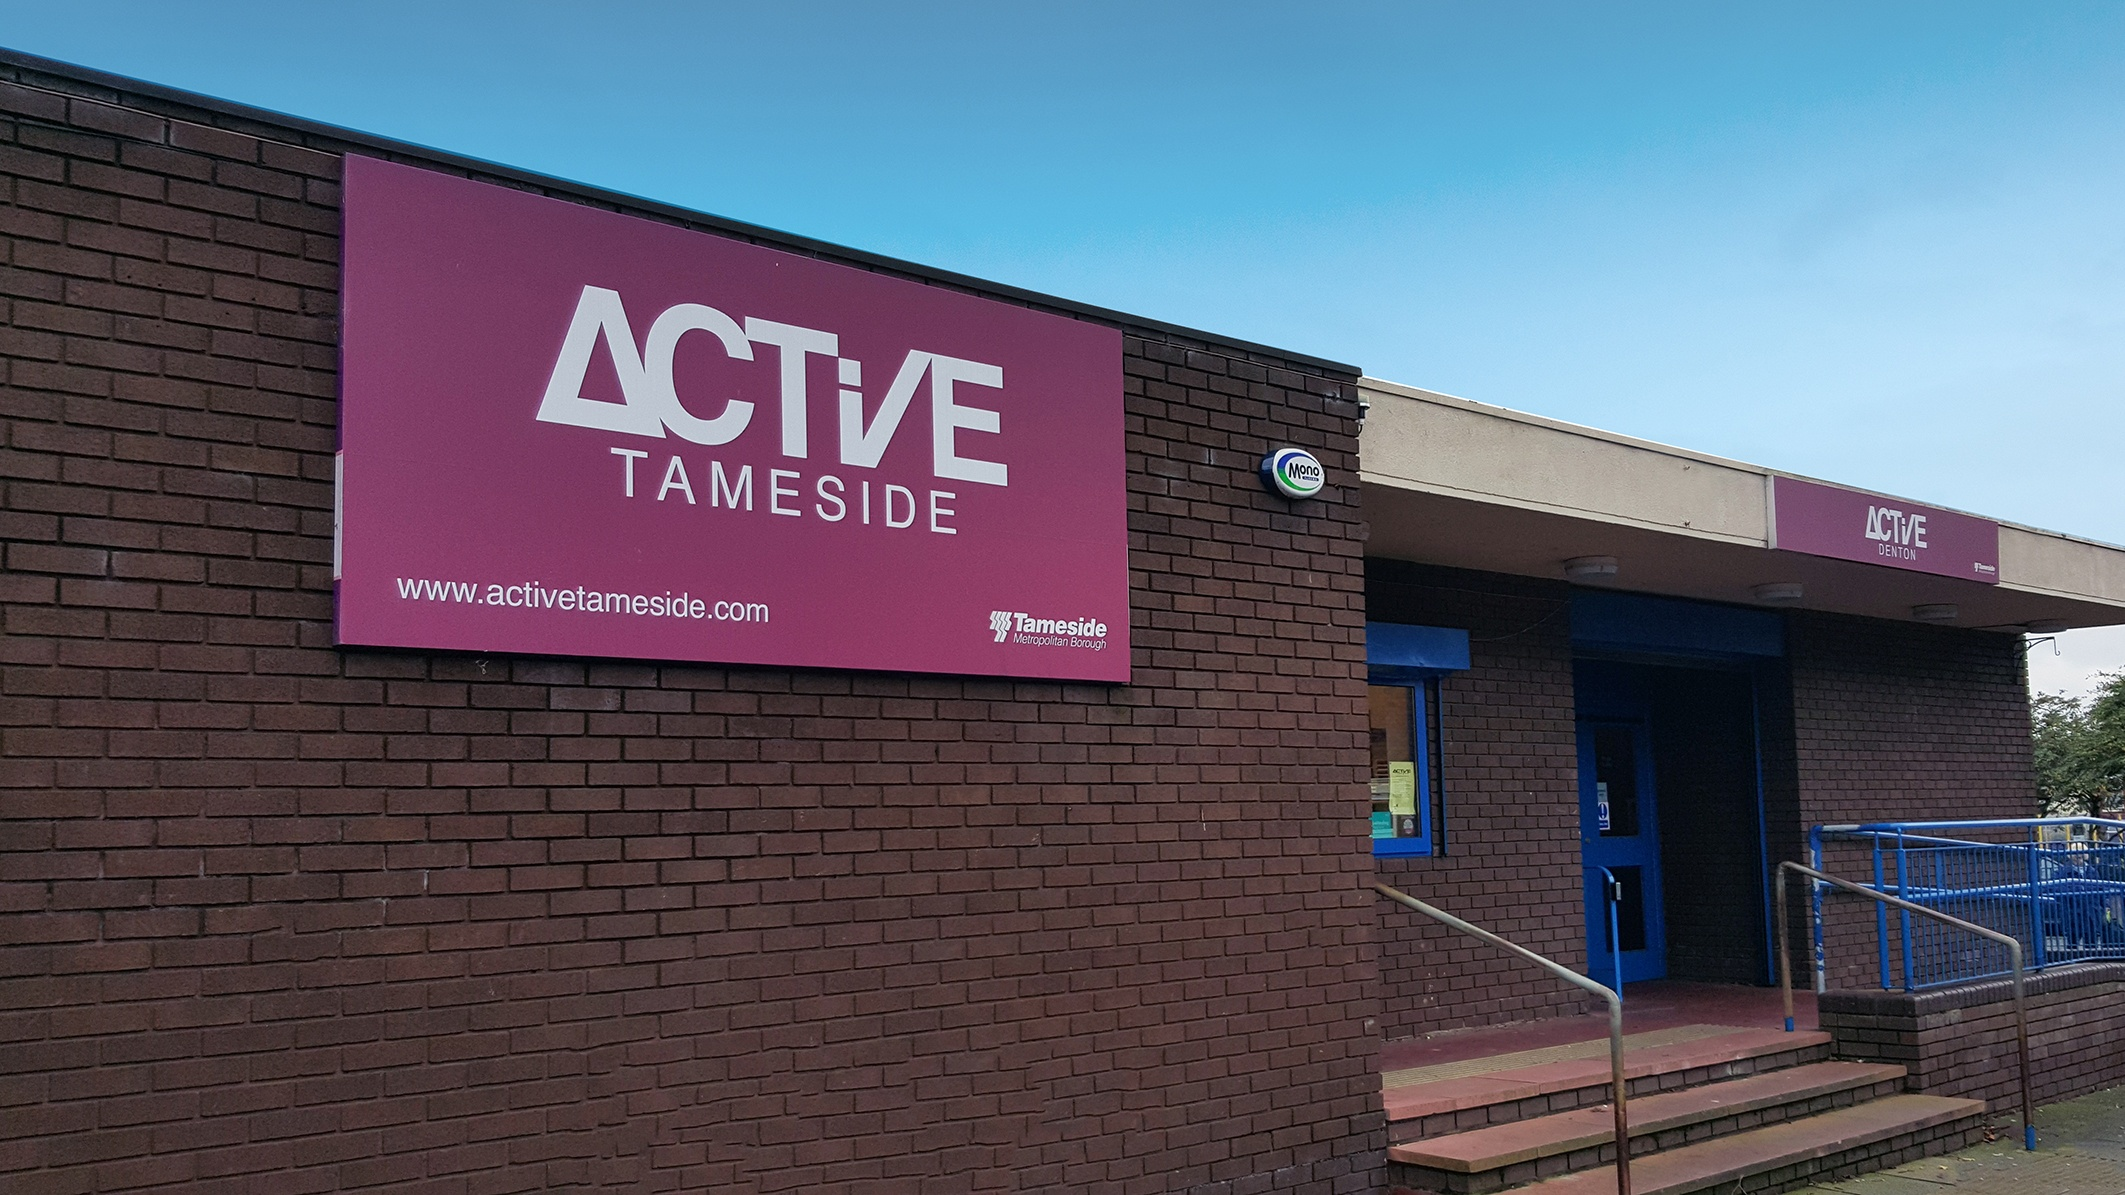 Active leisure: a selection of news